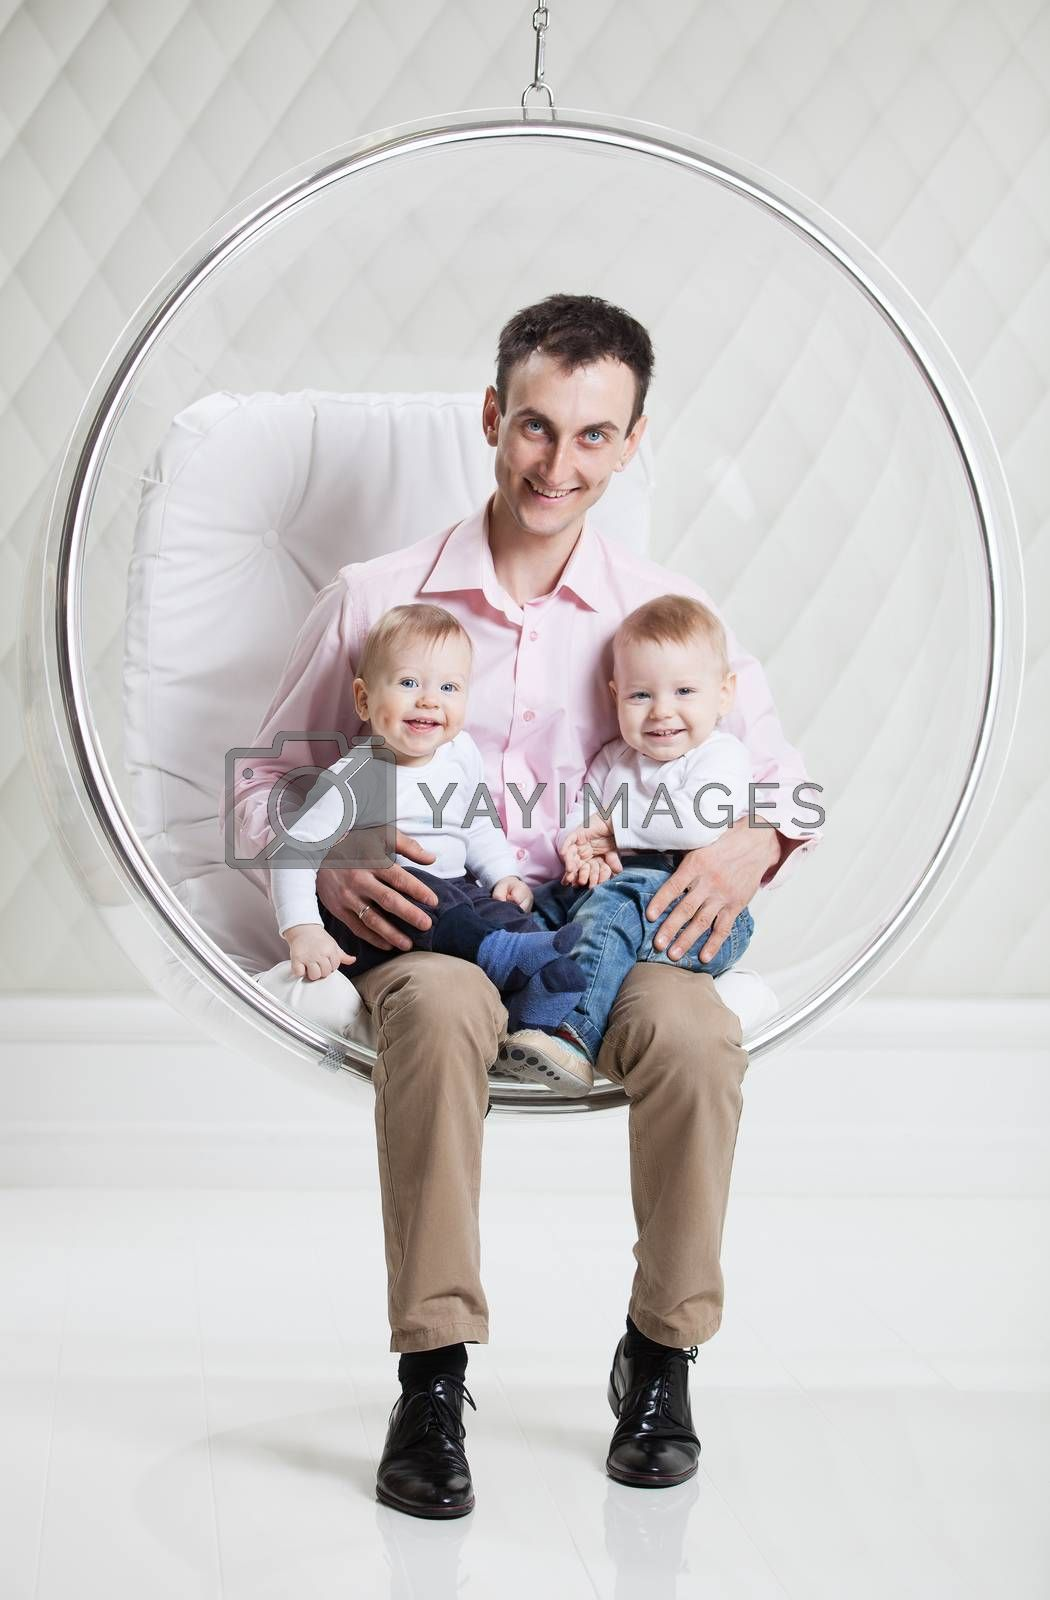 Young Caucasian man with two babies having fun while sitting in swinging hanging chair